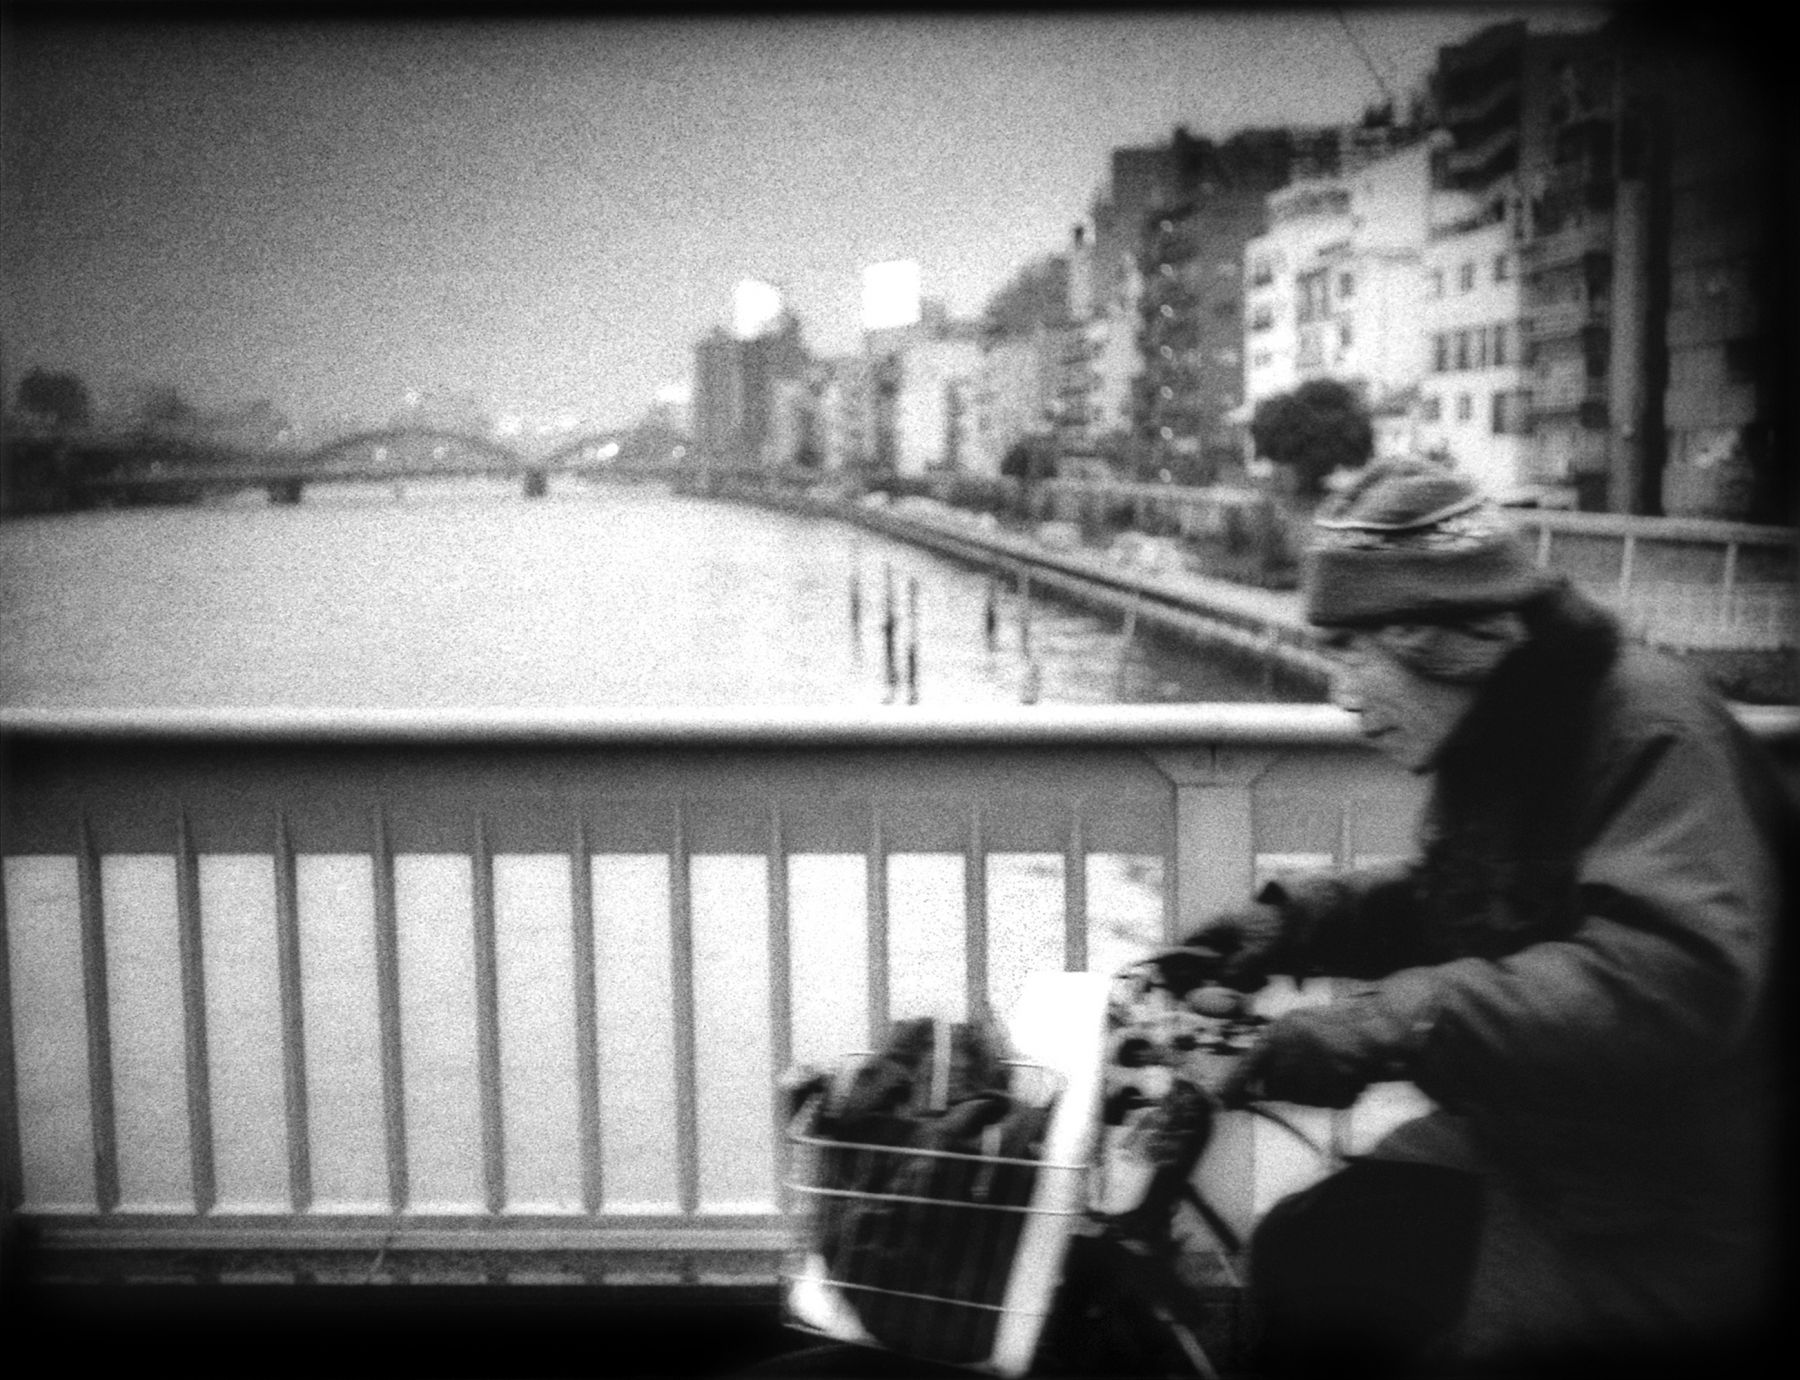 James Whitlow Delano, Mangaland, Cycling accross Sumida River Bridge in Ueno, Tokyo, Japan, 2005, Sous Les Etoiles Gallery